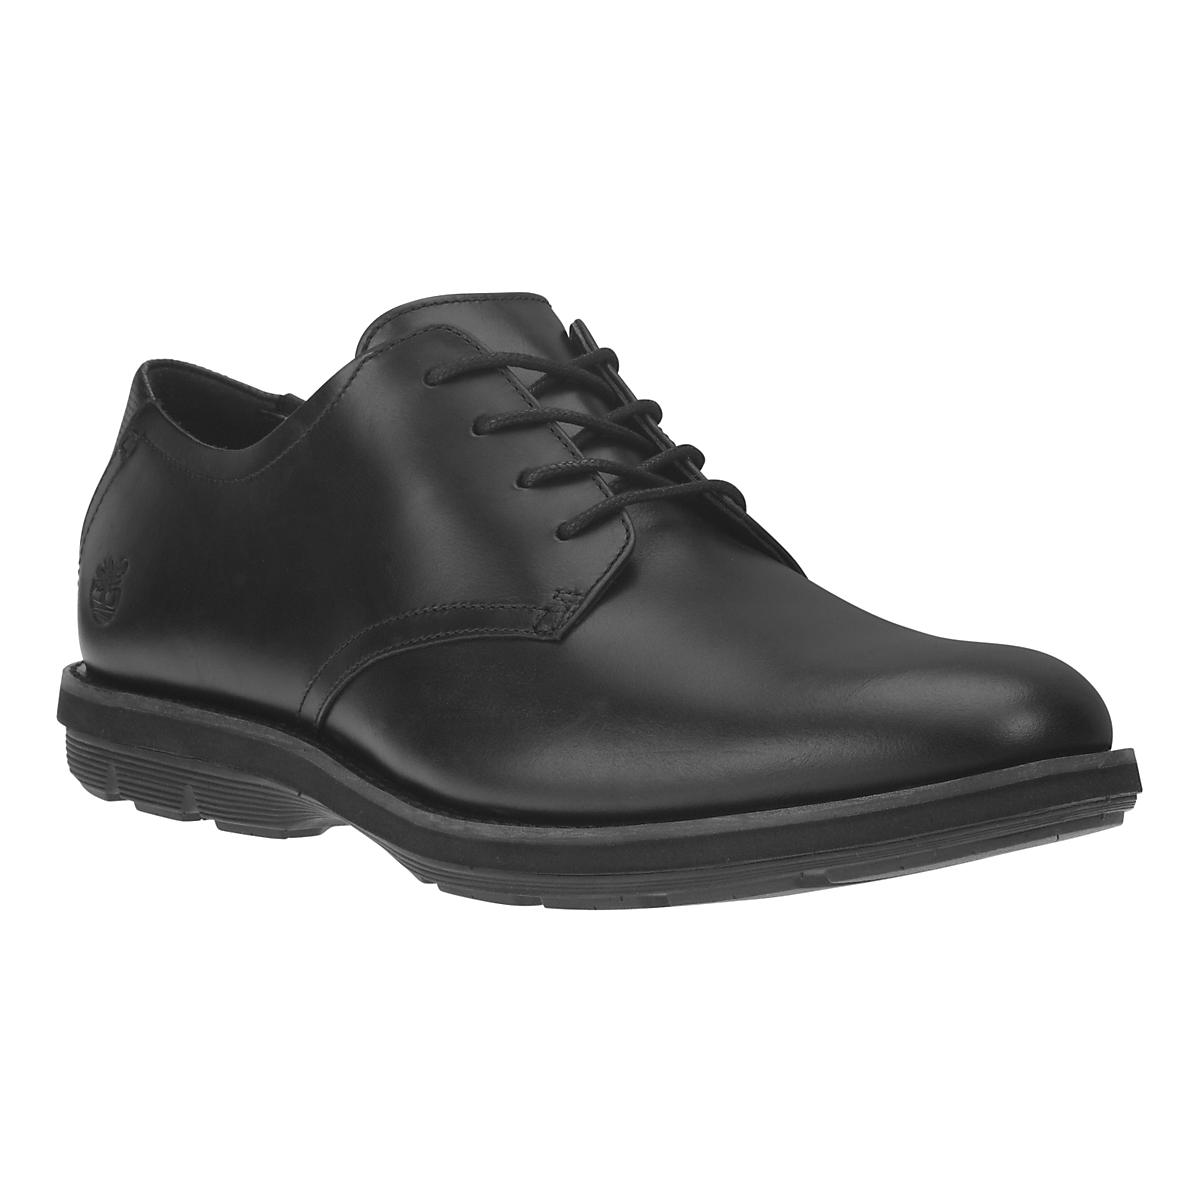 Men's Timberland�EK Kempton Oxford